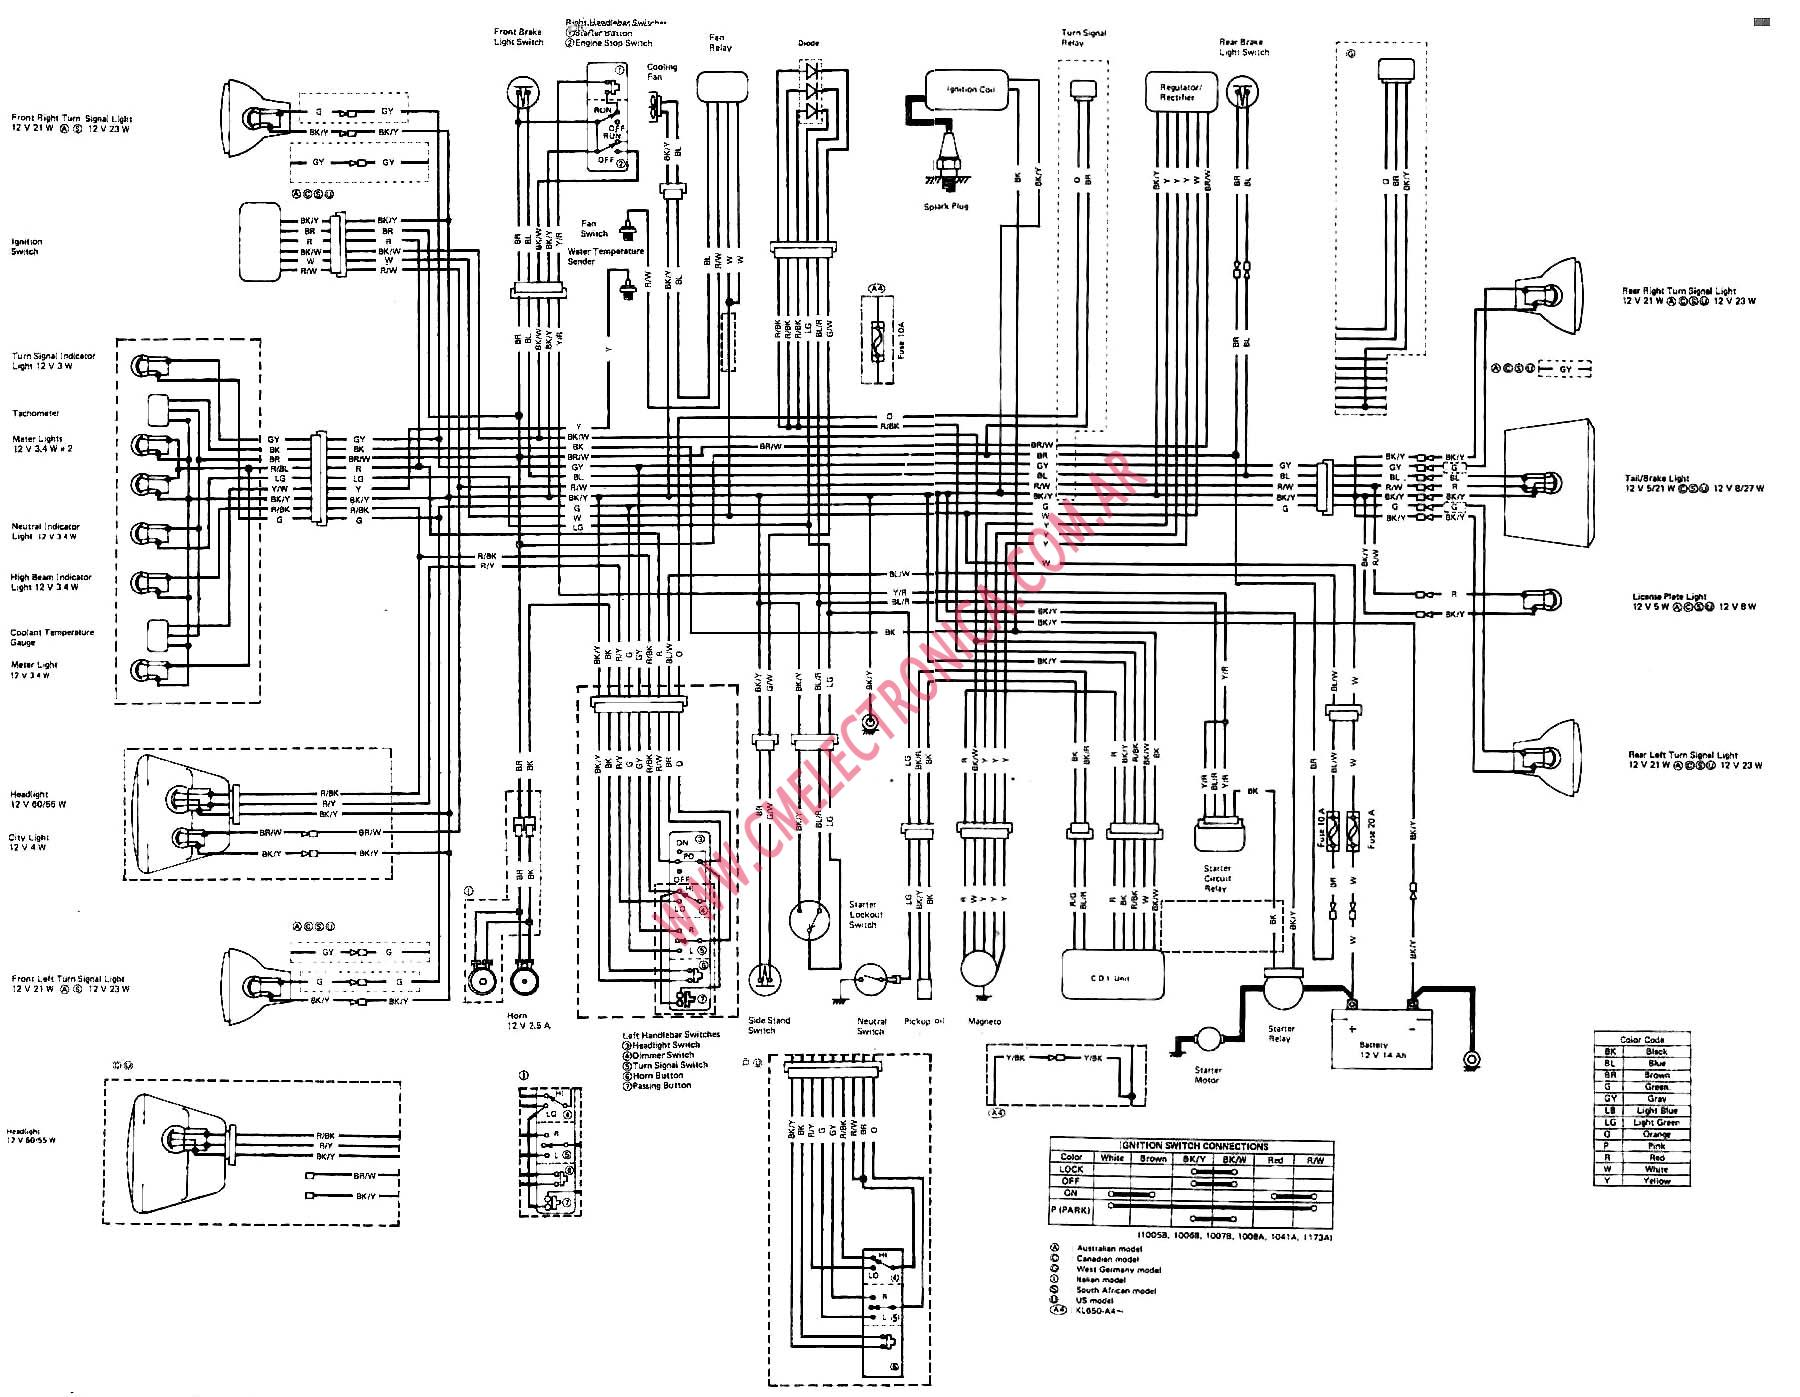 Kawasaki Mule Blueprints Wiring Diagram Not Lossing Pro 600 Third Level Rh 18 11 Jacobwinterstein Com 4010 4x4 Problems Fxt